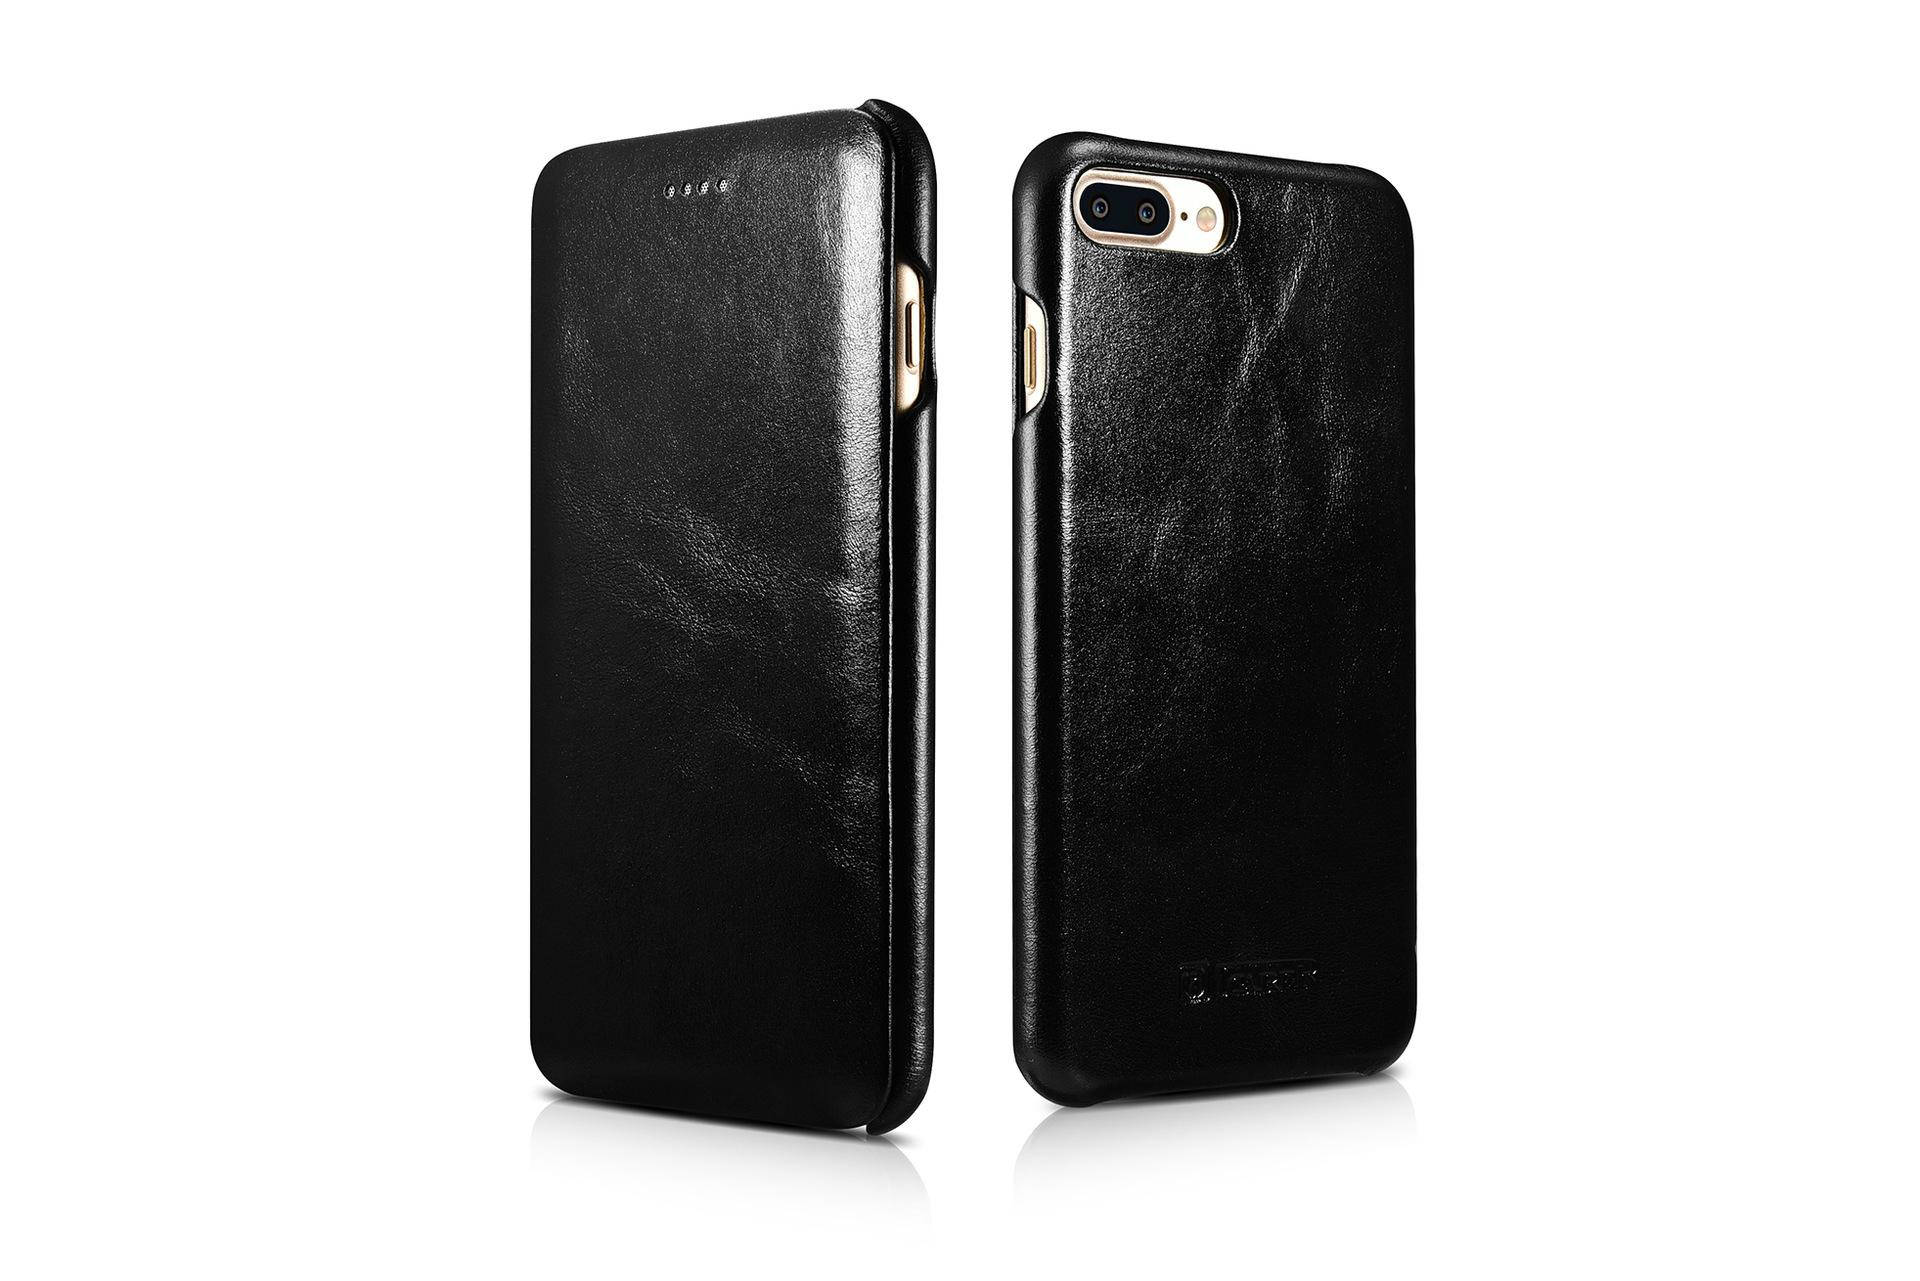 iCarer iPhone 7 Plus Curved Edge Vintage Series Genuine Leather Case 5